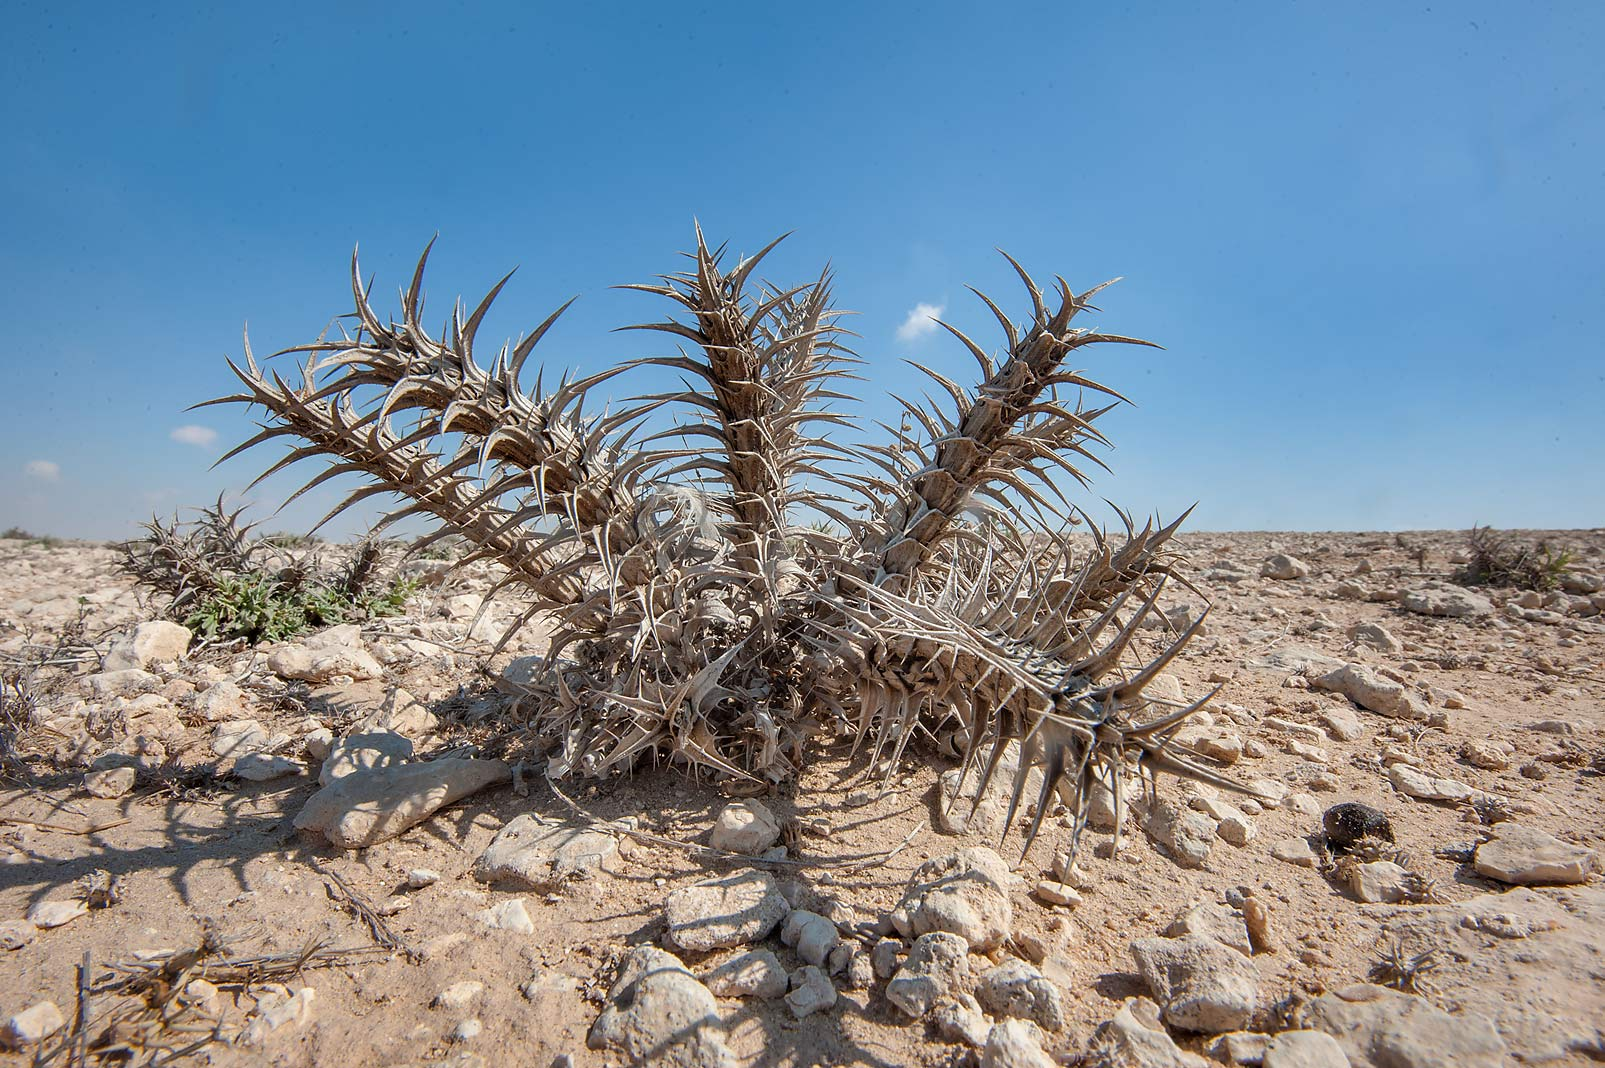 Dry Eyelash plant (Blepharis ciliaris, local...of a road to Al Numan. Northern Qatar